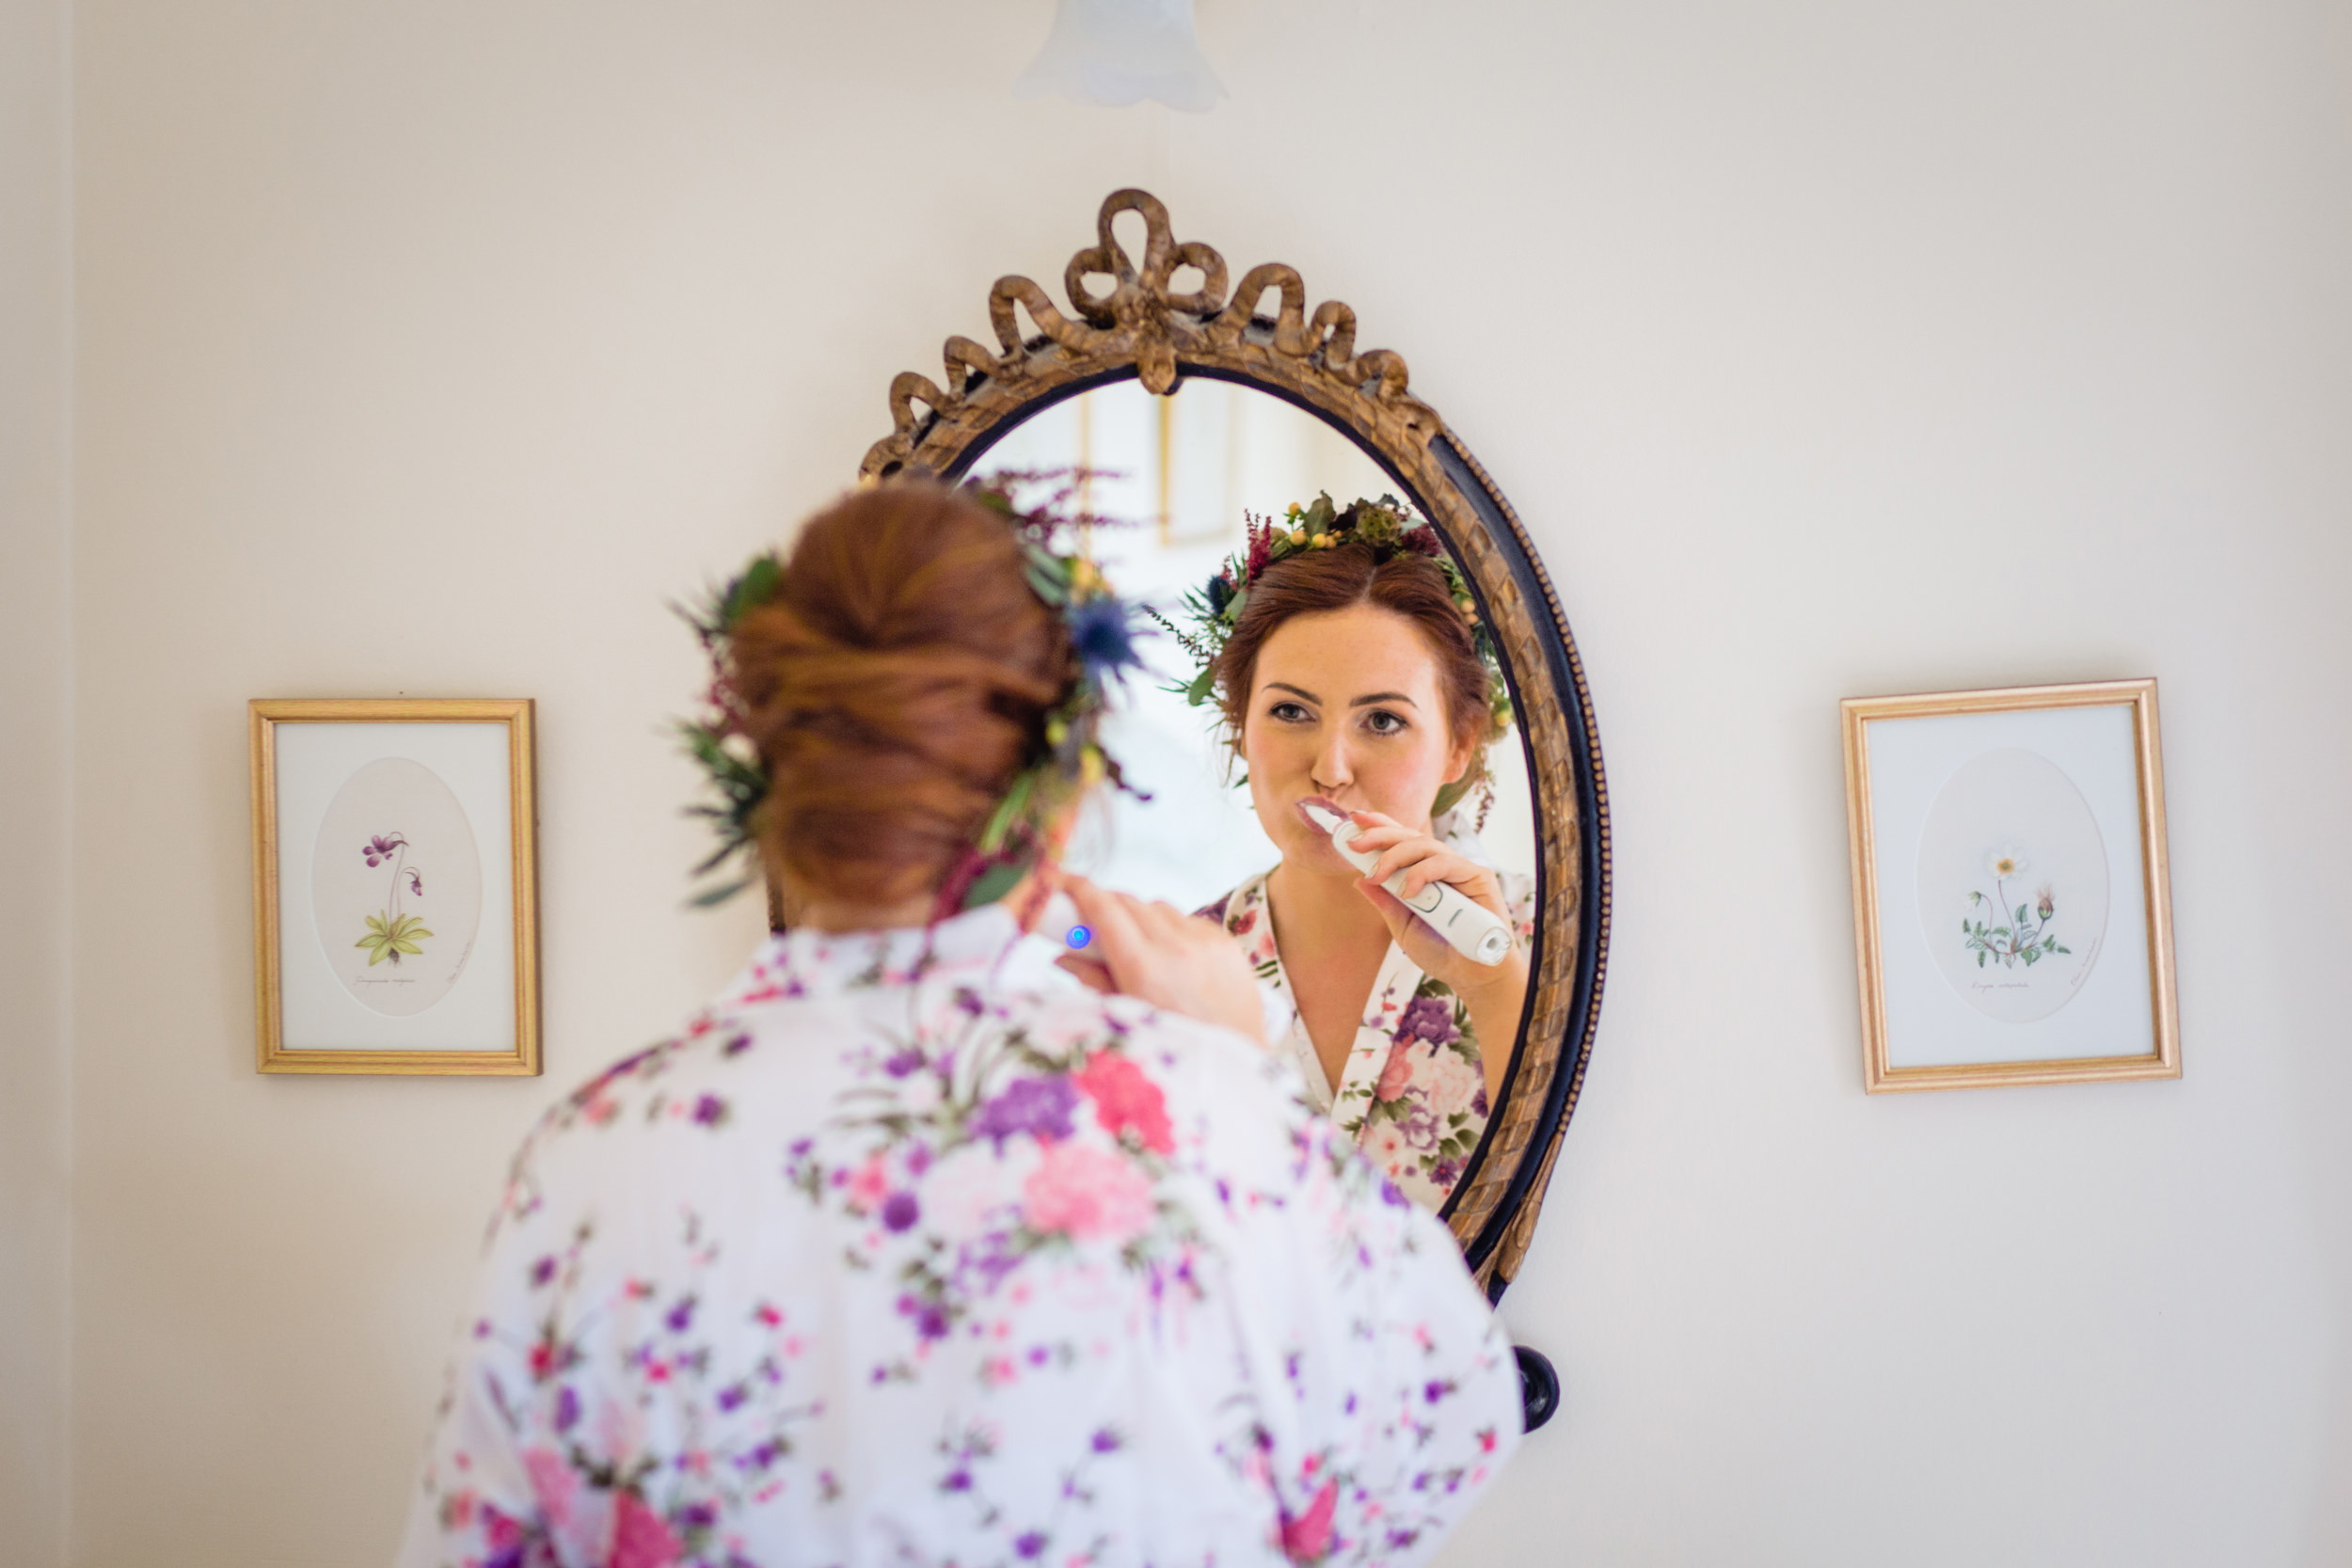 bride brushing her teeth in the mirror. scotland wedding photography by emma and rich.